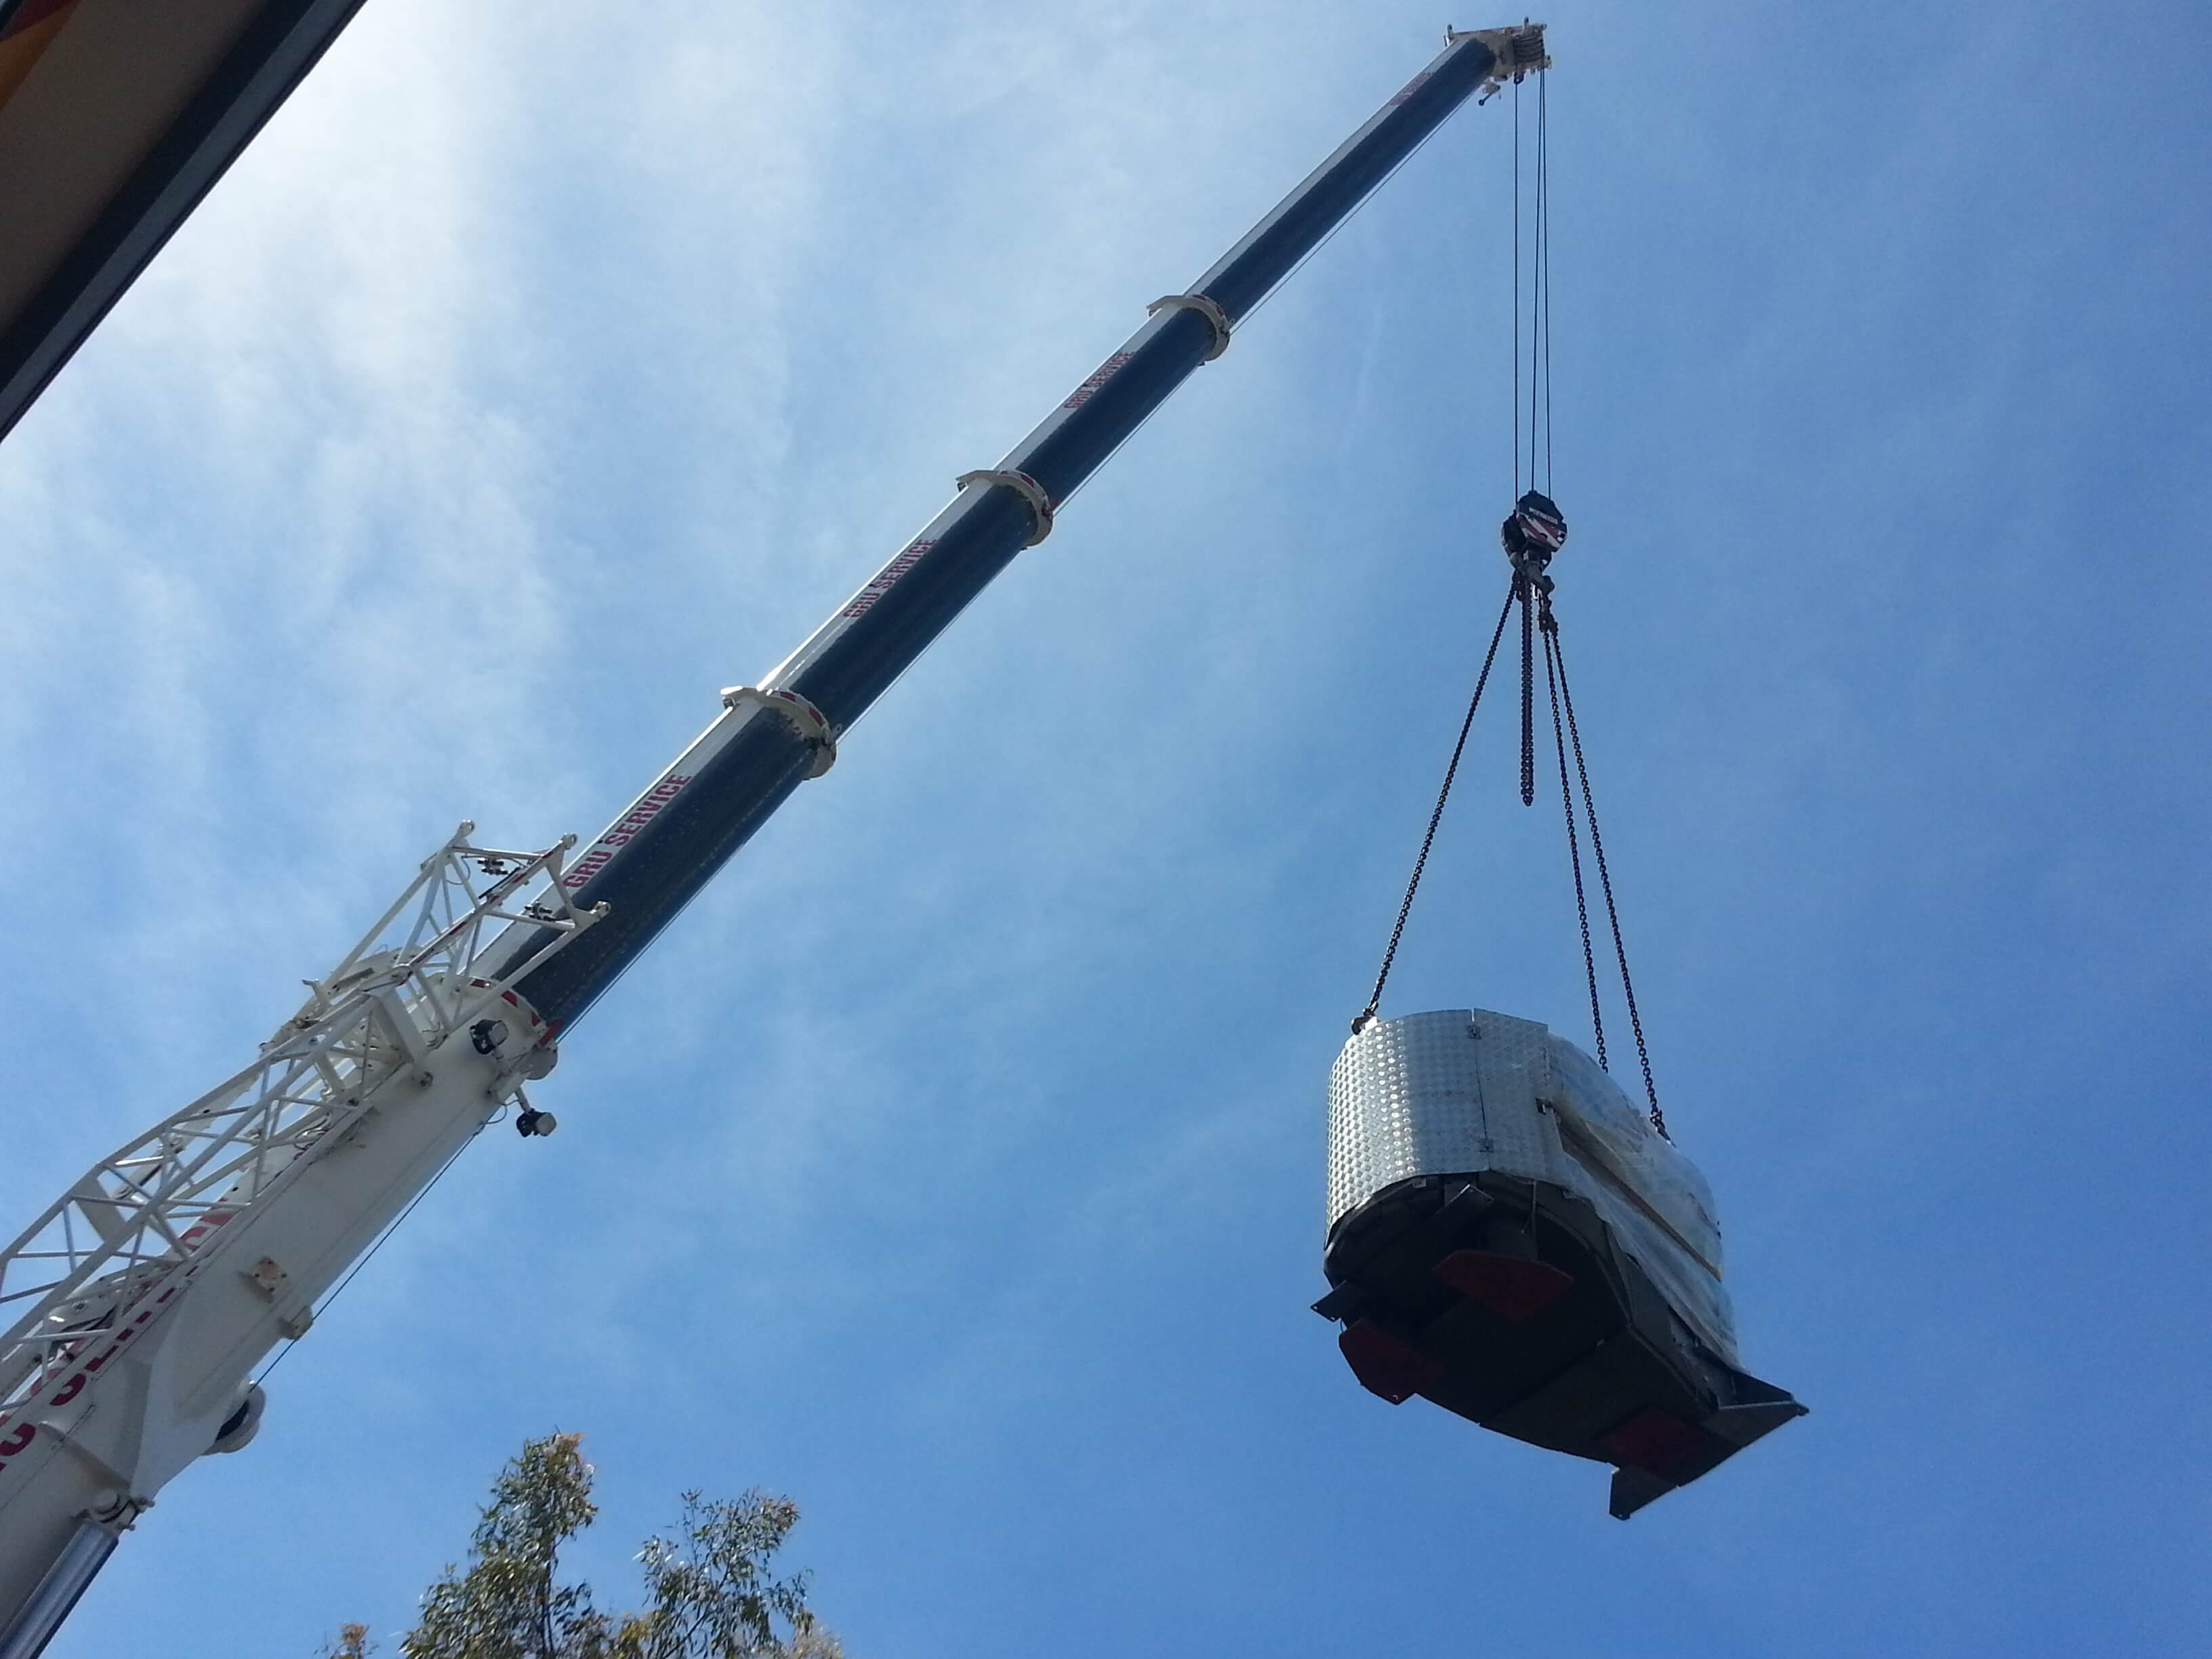 Transporting Hitachi Open using a crane